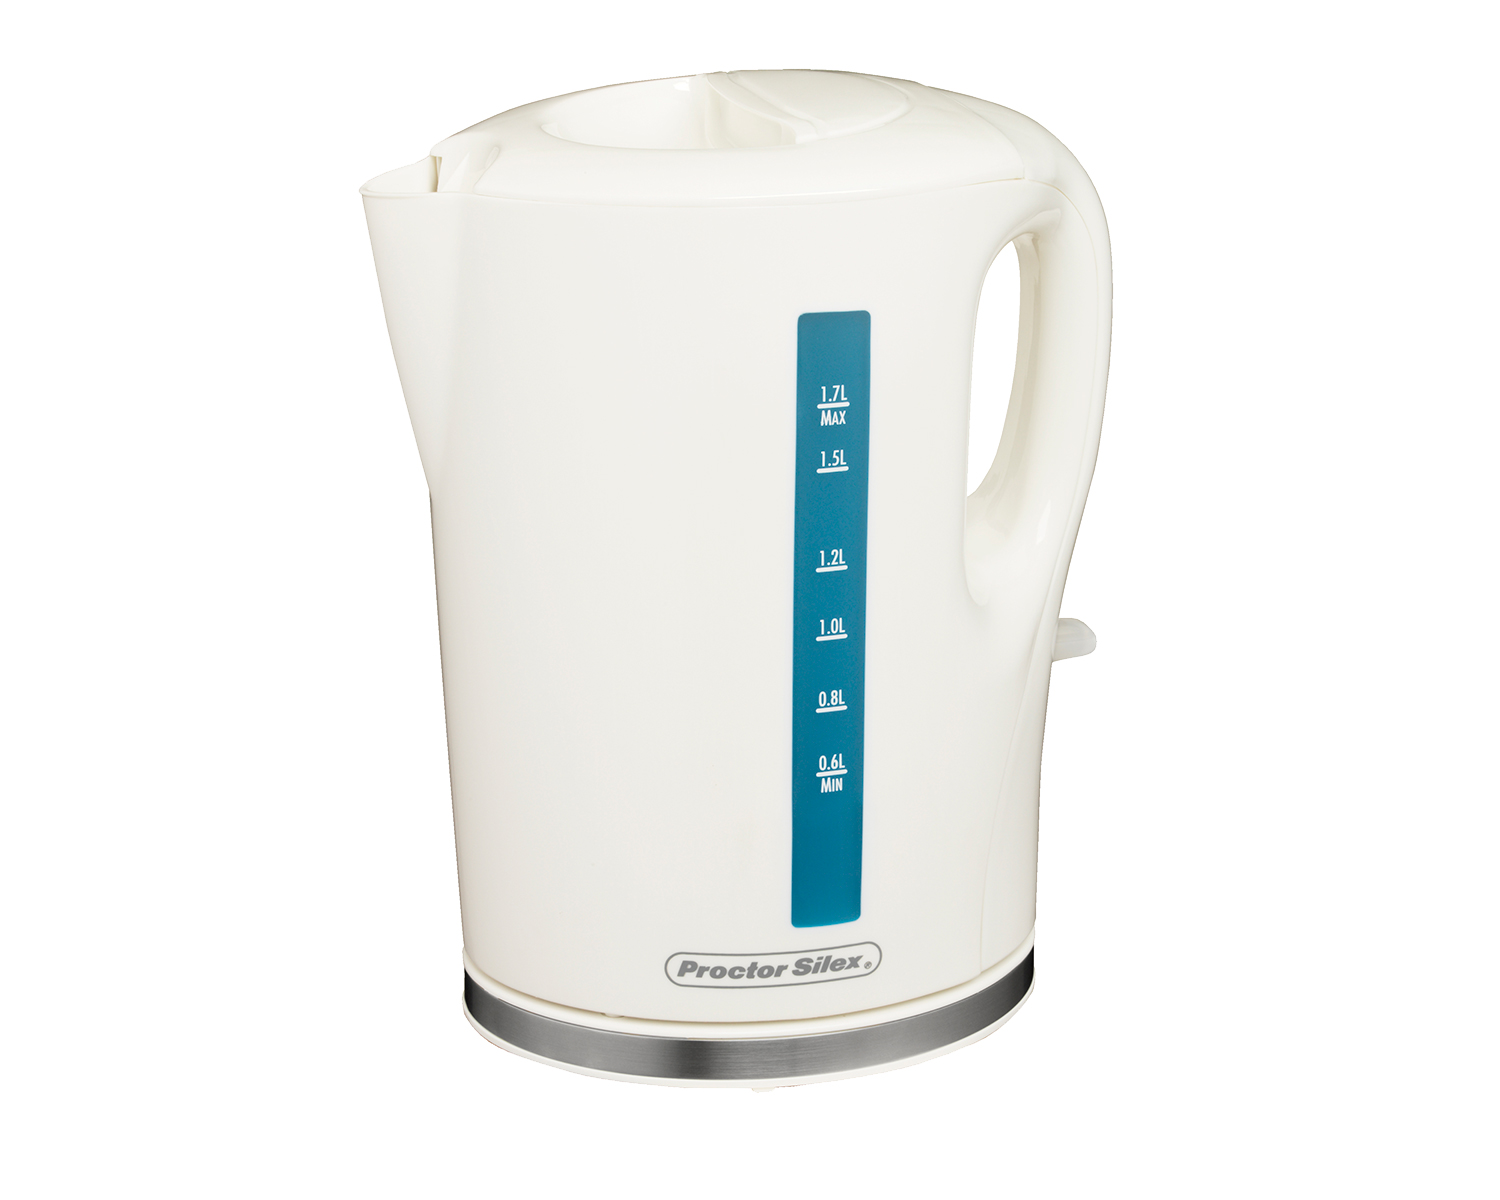 1.7 Liter Cordless Electric Kettle-41003